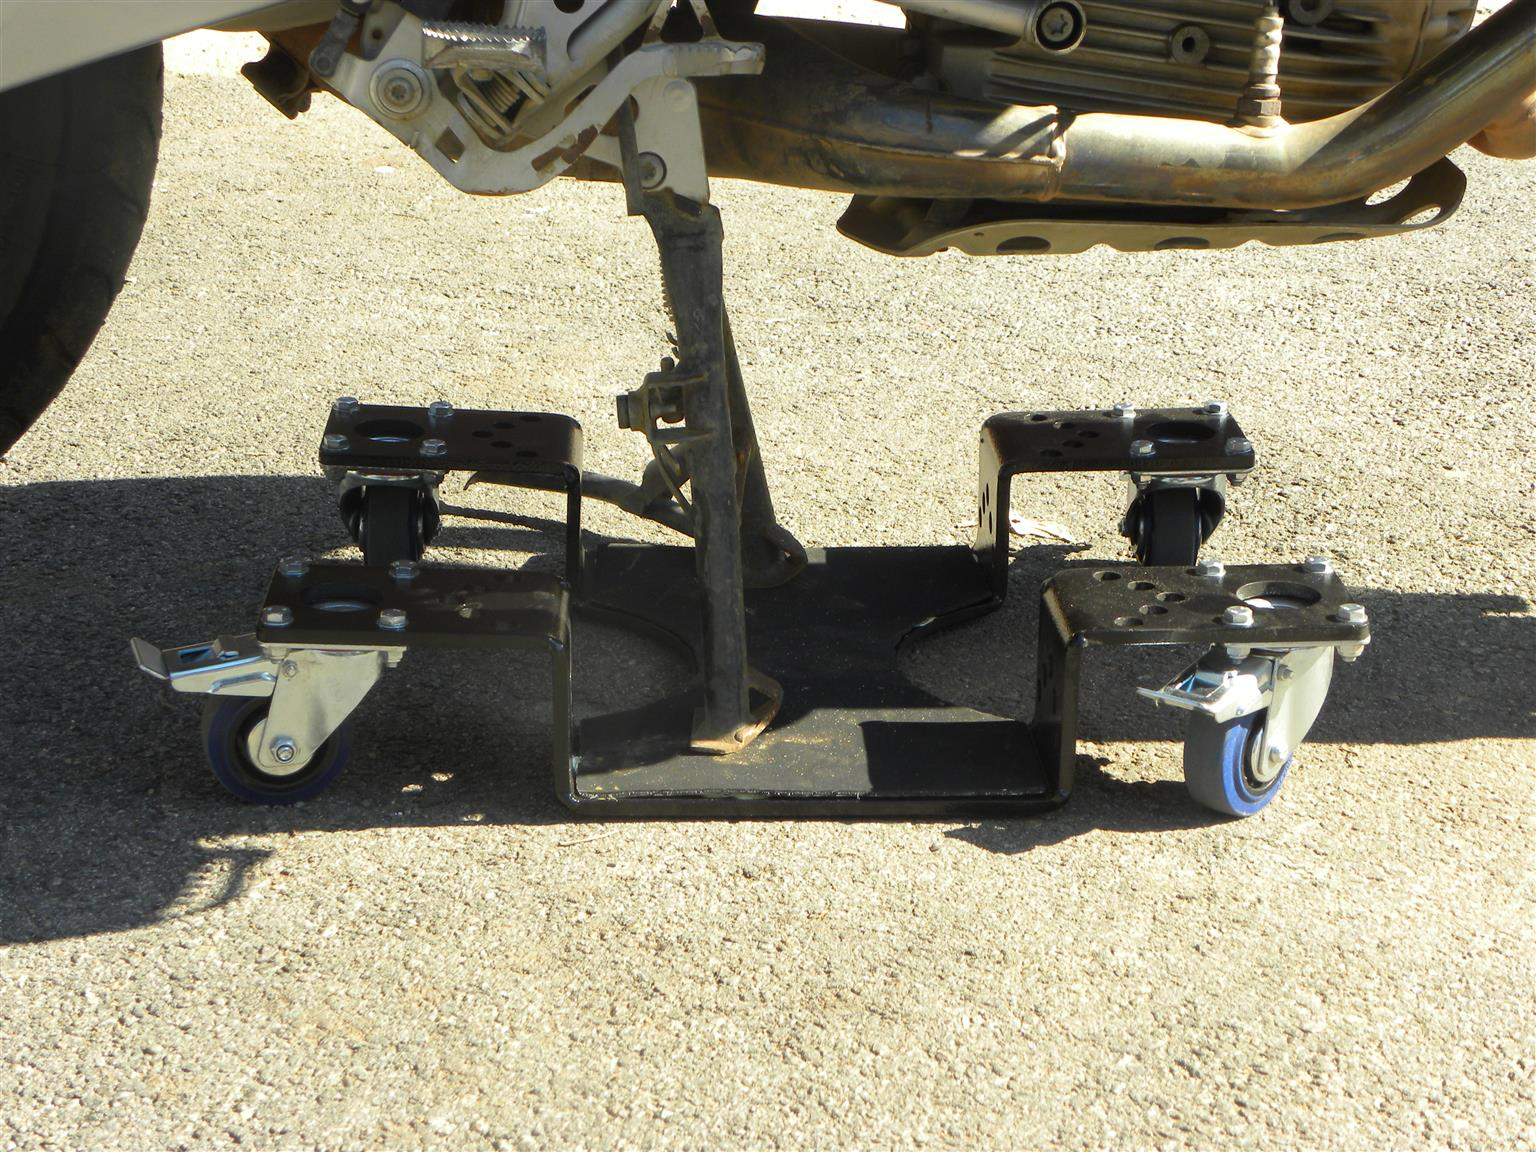 Centre stand dolly/trolley